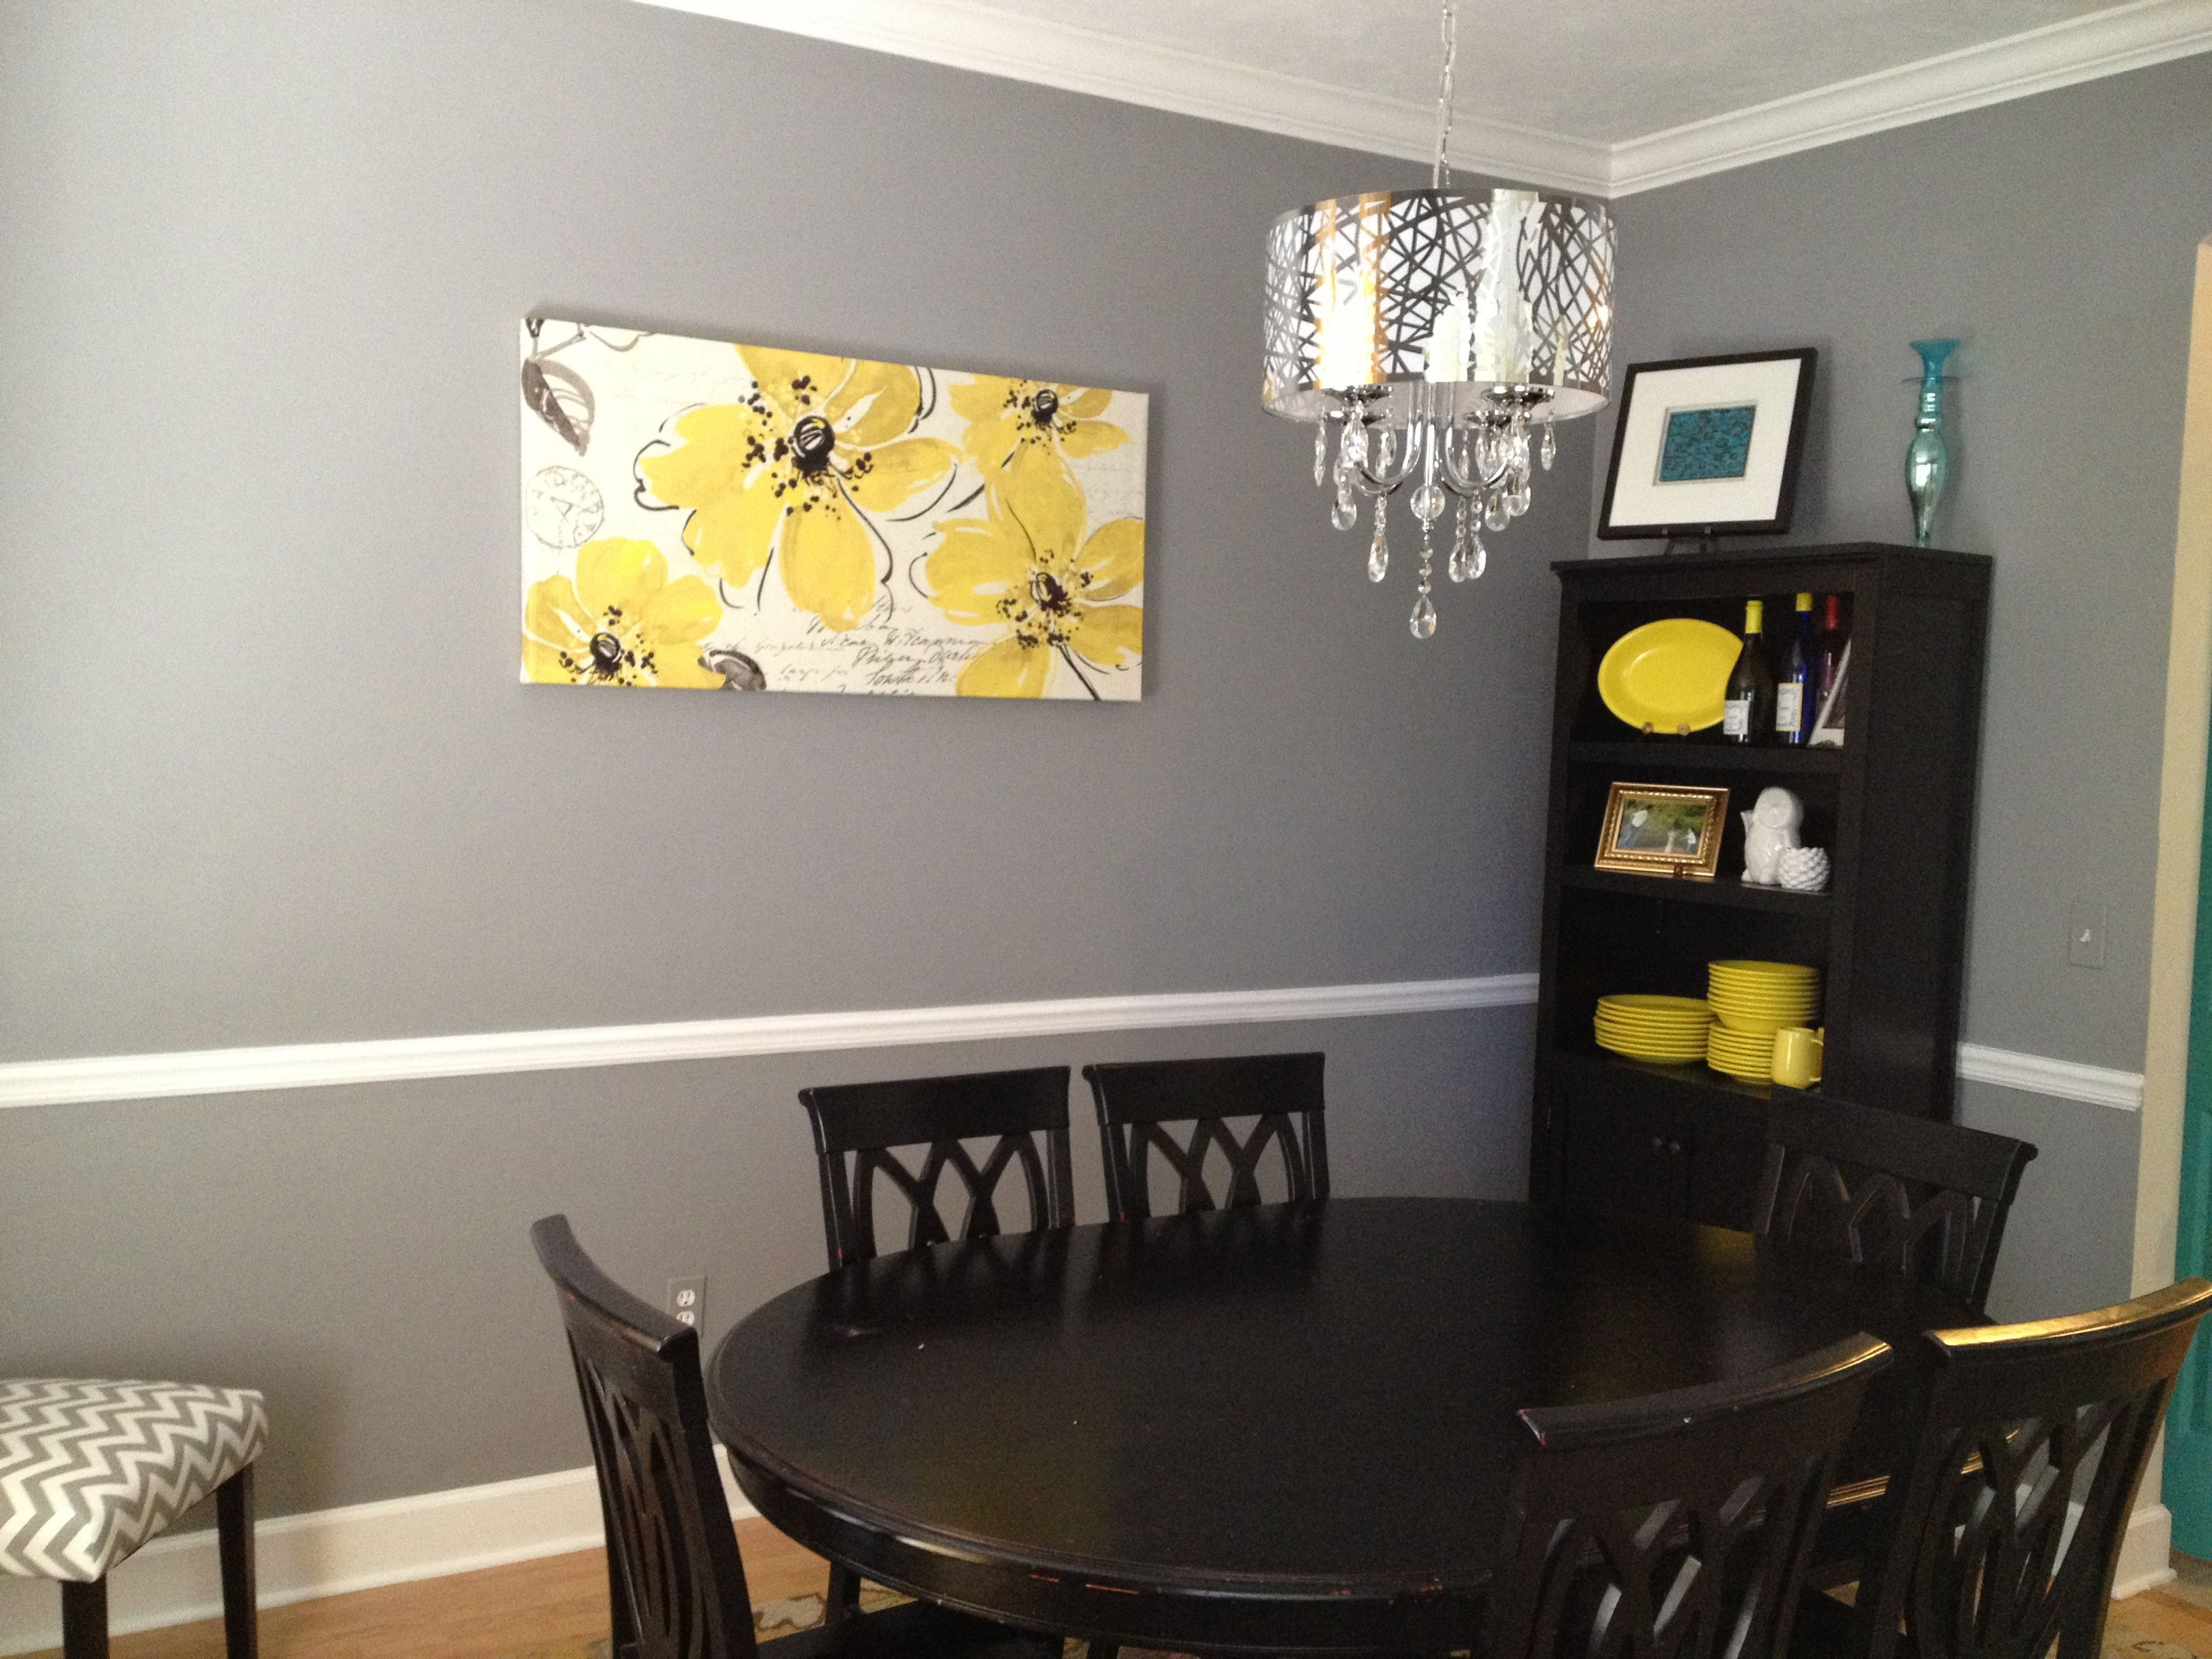 Pin by Amber Peebles on Stuff for the home  Yellow dining room